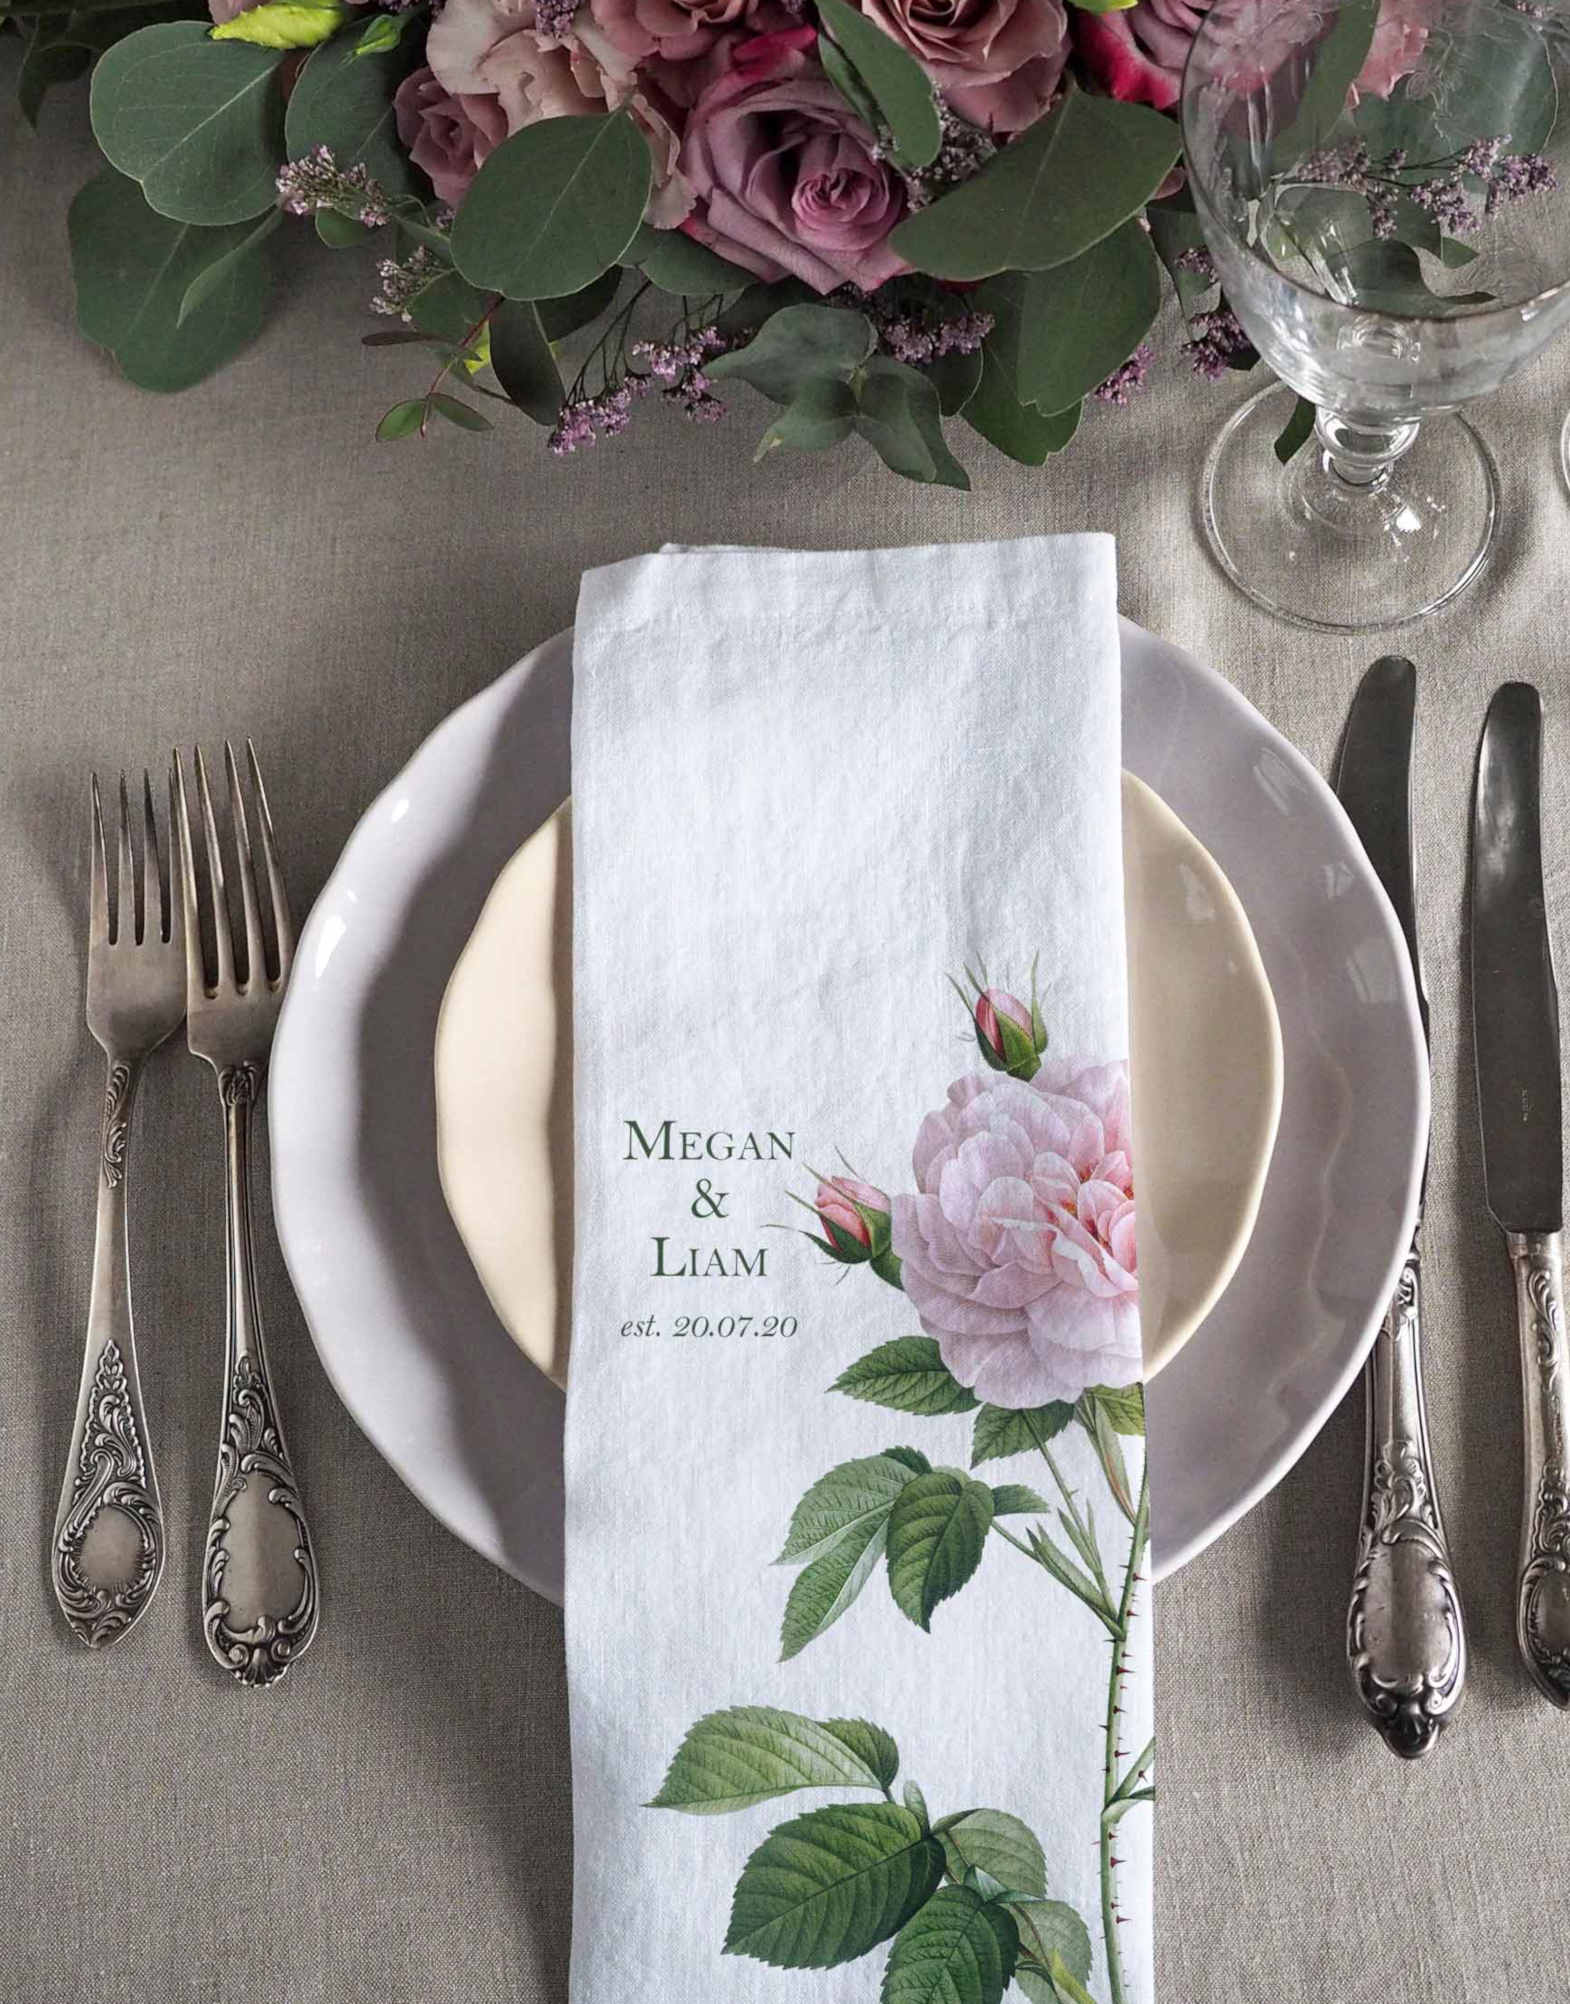 Personalised wedding linen napkin with flower design from Linoroom